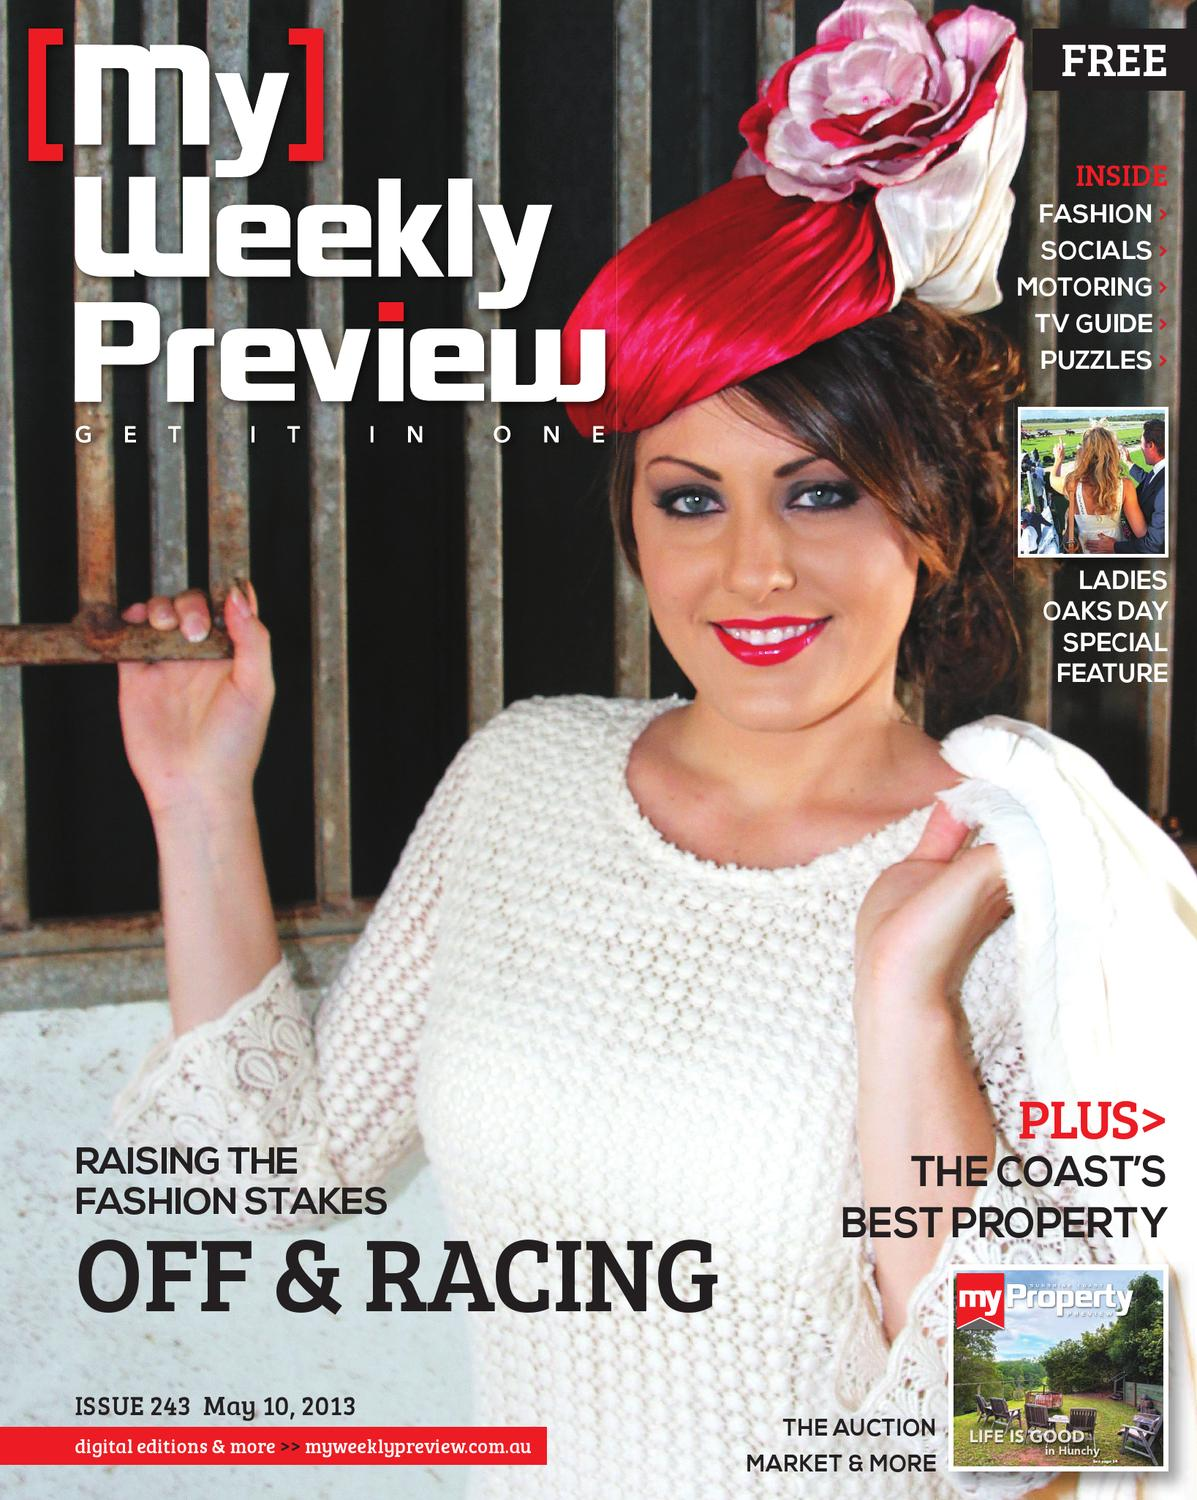 My Weekly Preview Issue 243 - May 10, 2013 by My Weekly